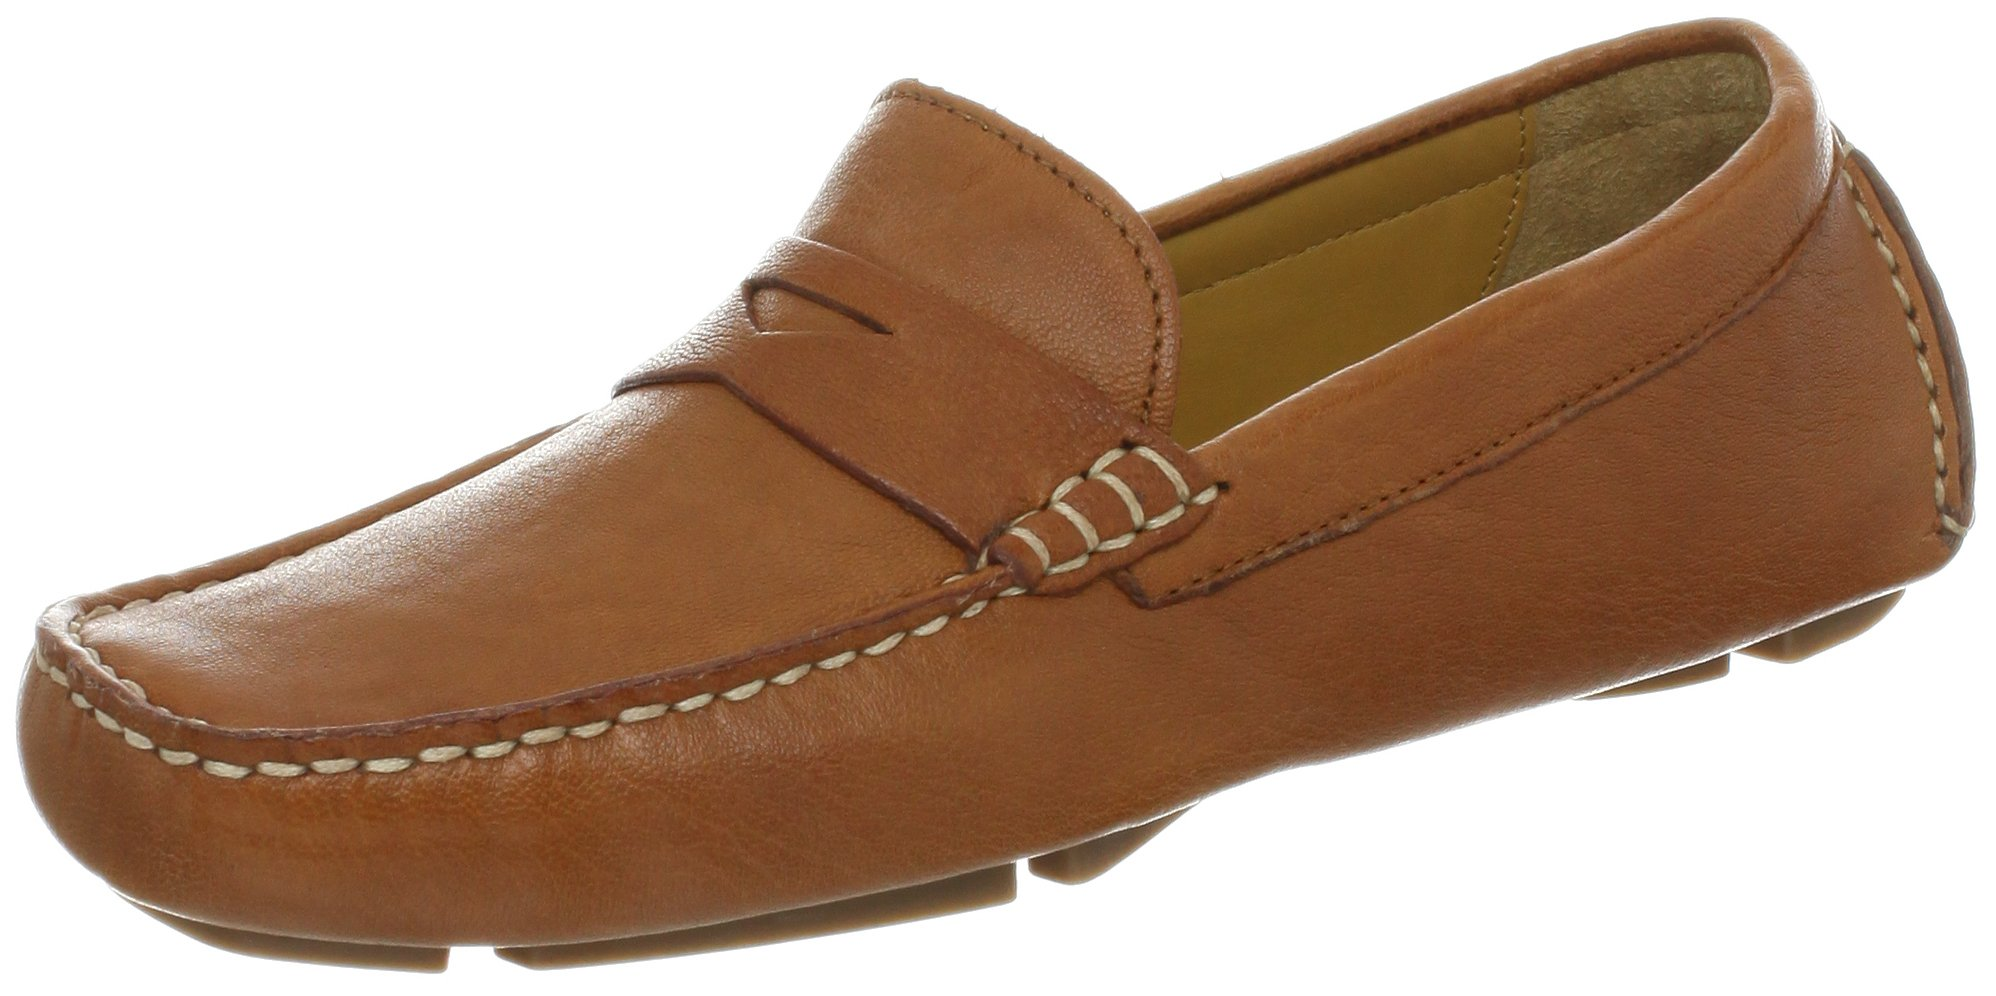 Cole Haan Women's Trillby Driver Penny Loafer,Luggage,6.5 B US